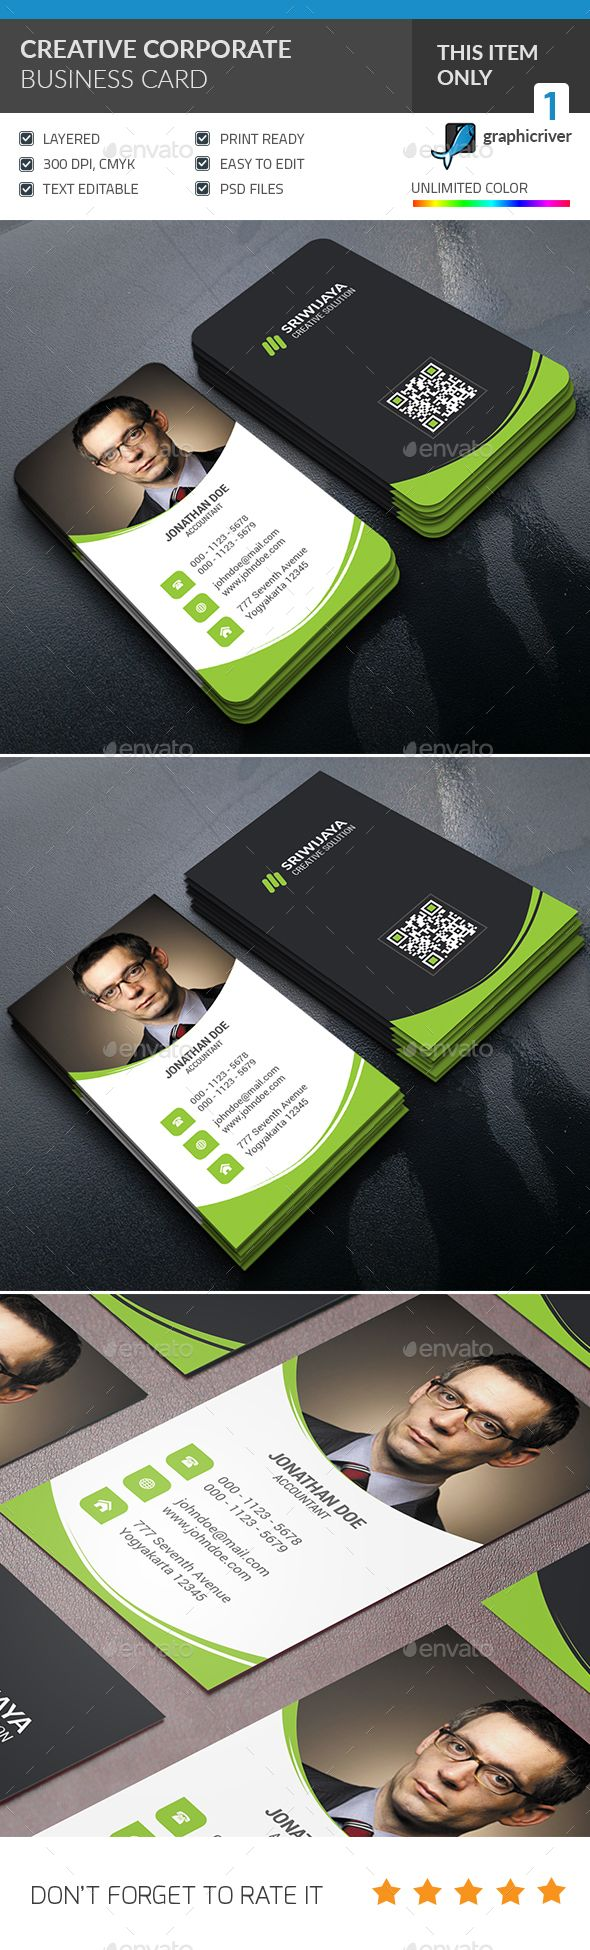 Creative Corporate Business Card — Photoshop PSD #minimalist #photo • Available here → https://graphicriver.net/item/creative-corporate-business-card-/14237183?ref=pxcr